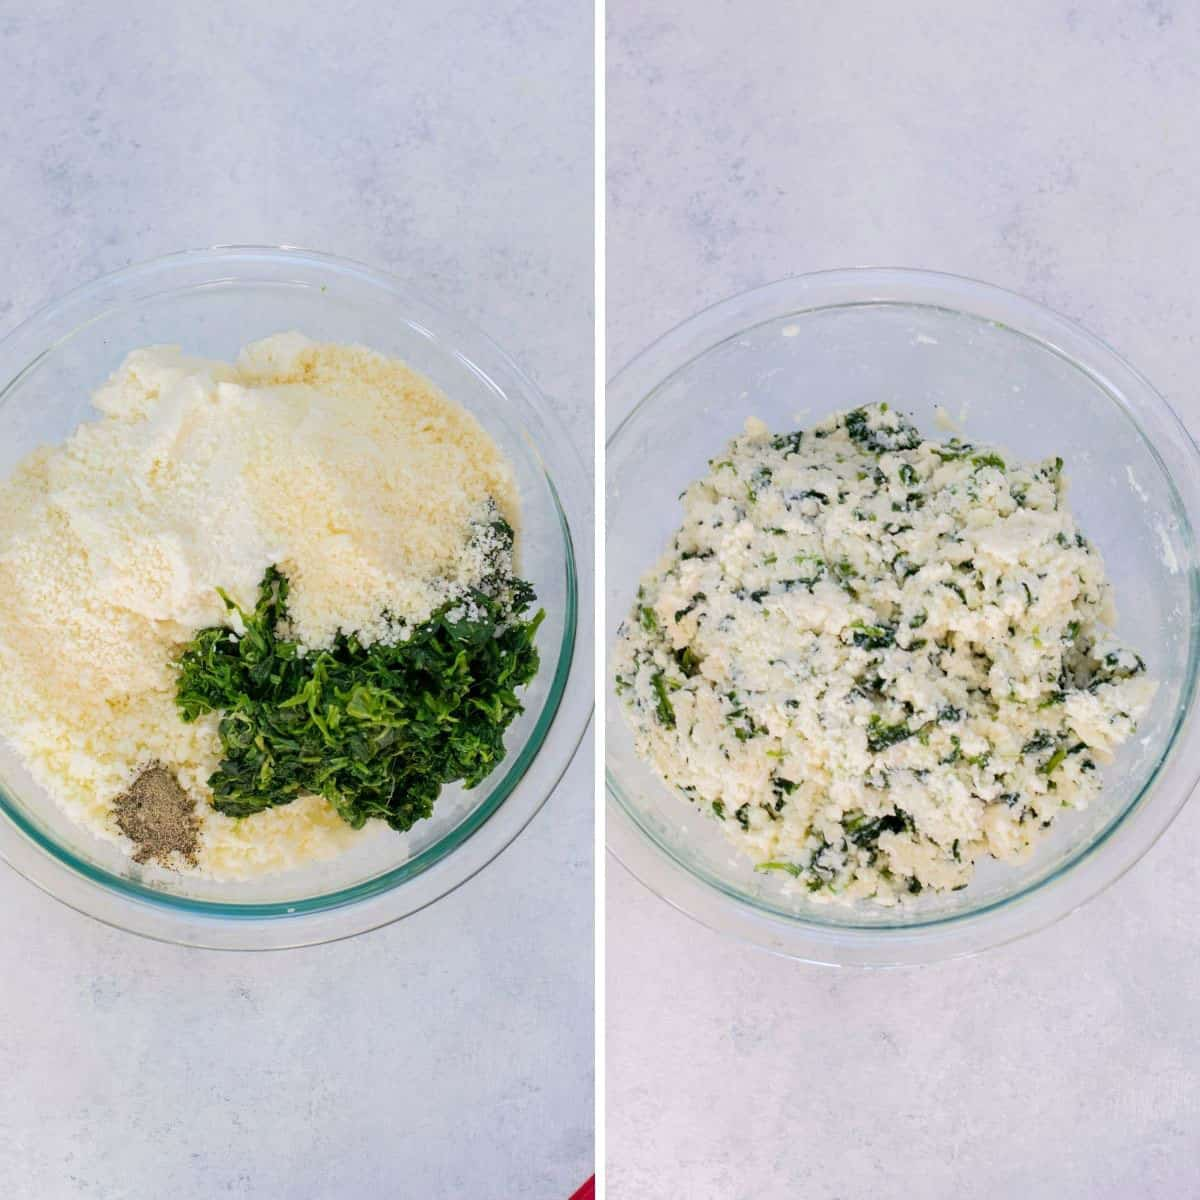 bowl of cheese, spinach, seasonings, bowl of ricotta filling